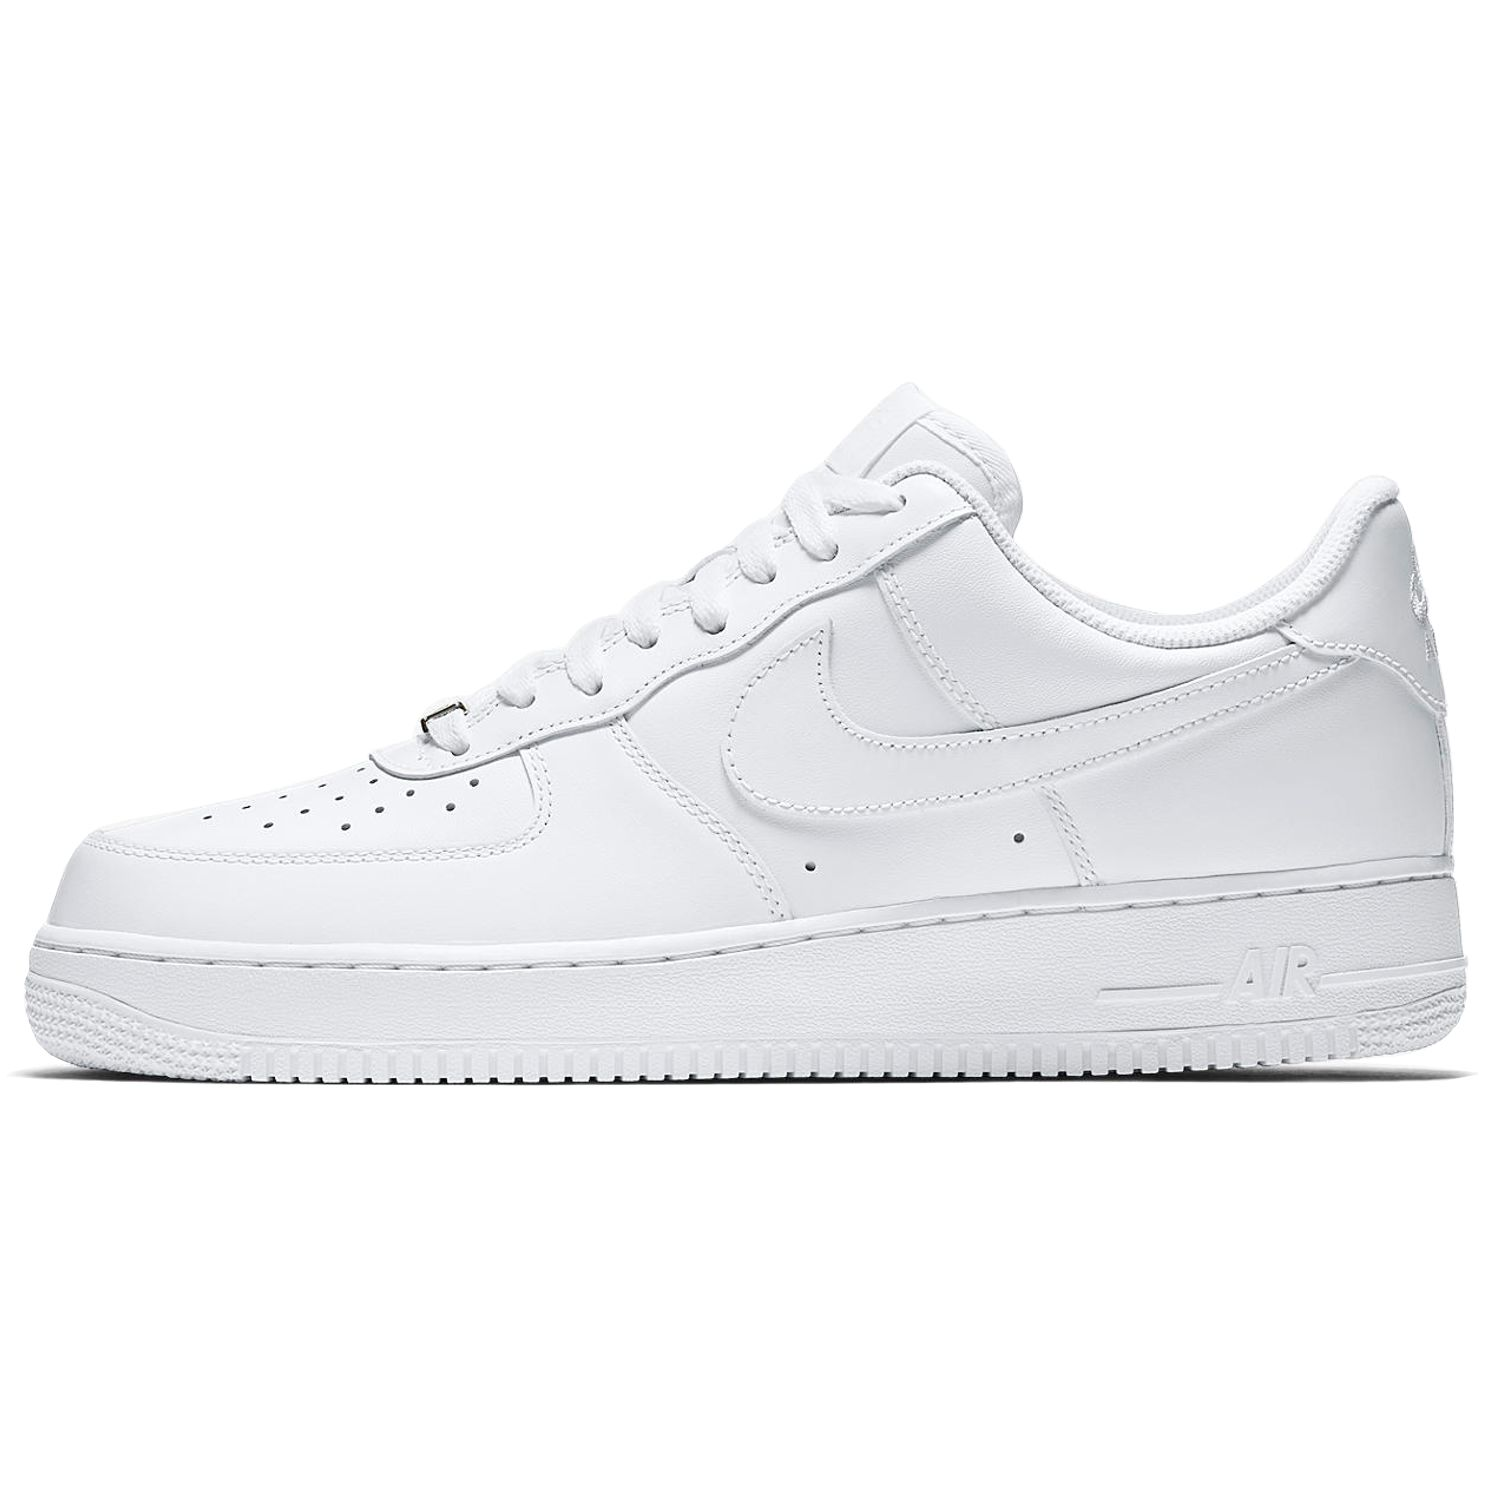 BUTY MĘSKIE NIKE AIR FORCE 1 07 ALL WHITE 315122-111